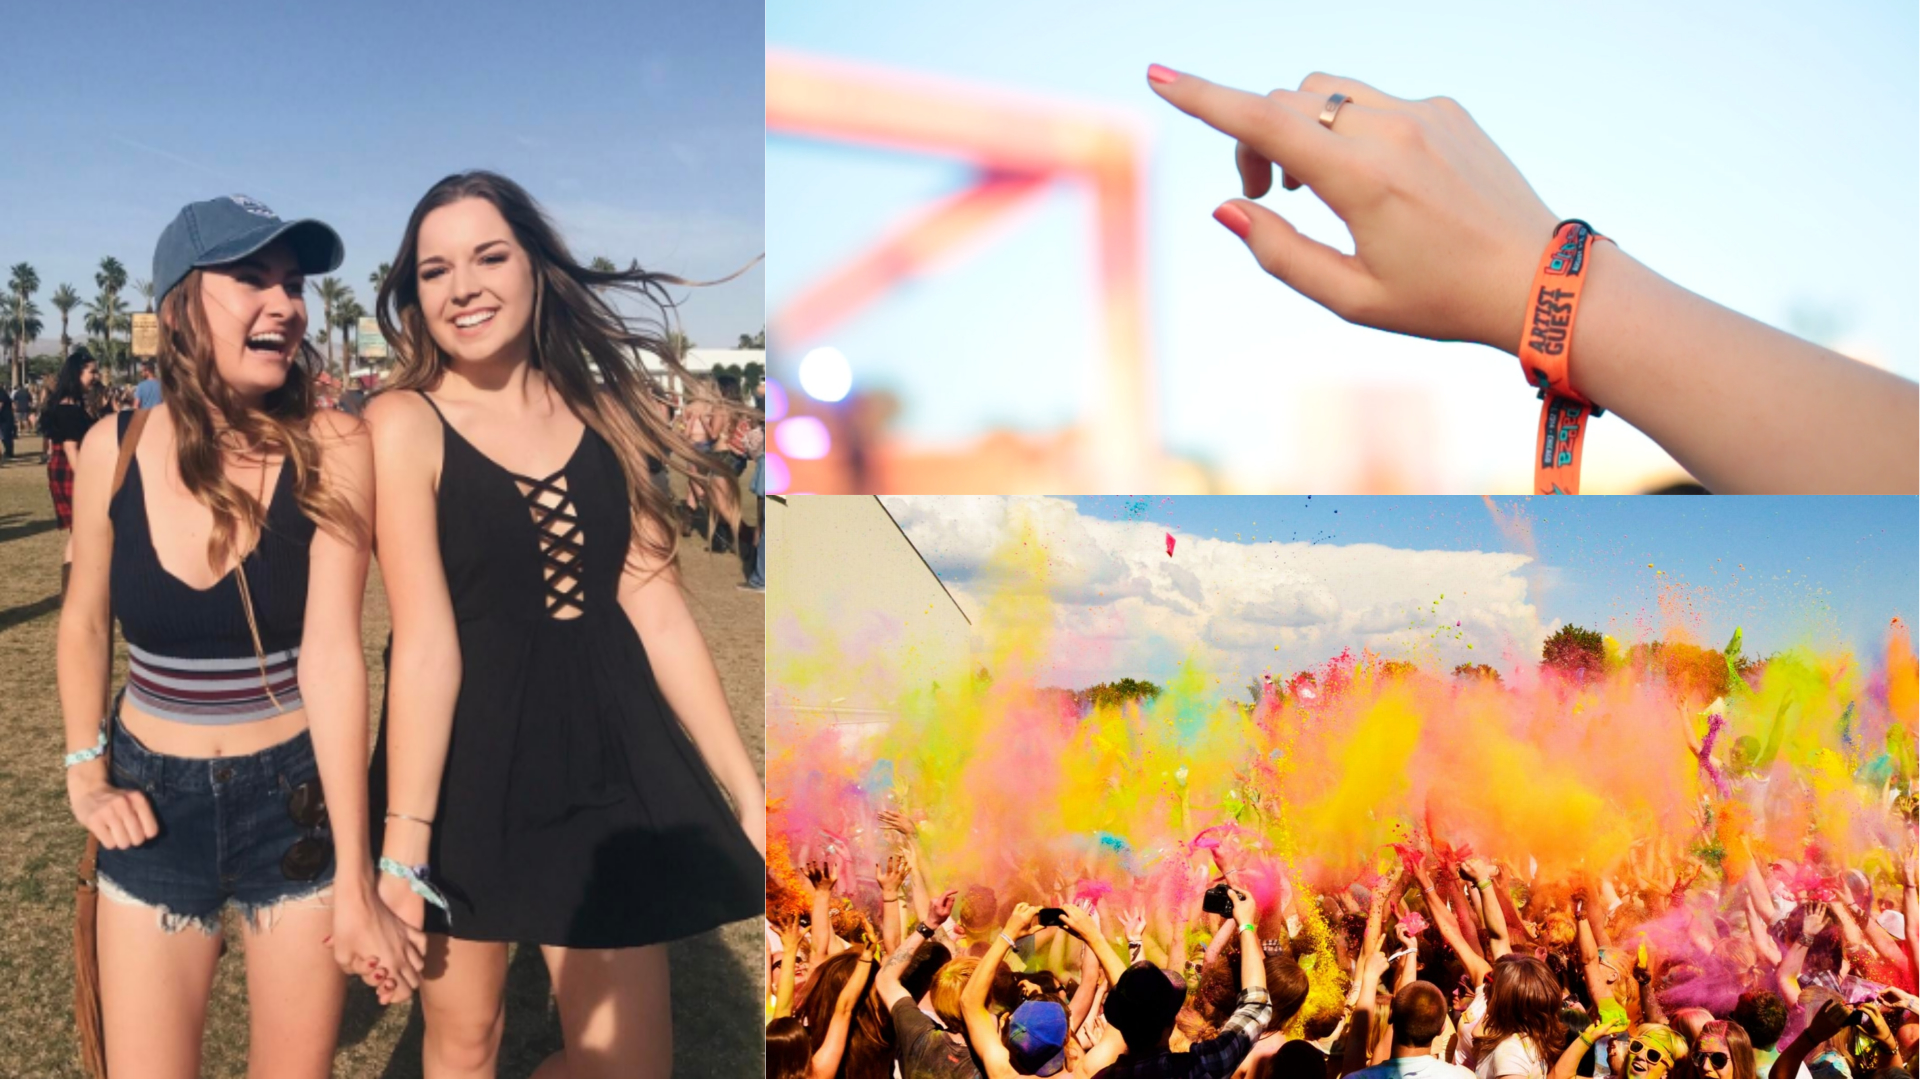 DIY Festival Wristbands: 3 Creative Ways to Upcycle Old Wristbands